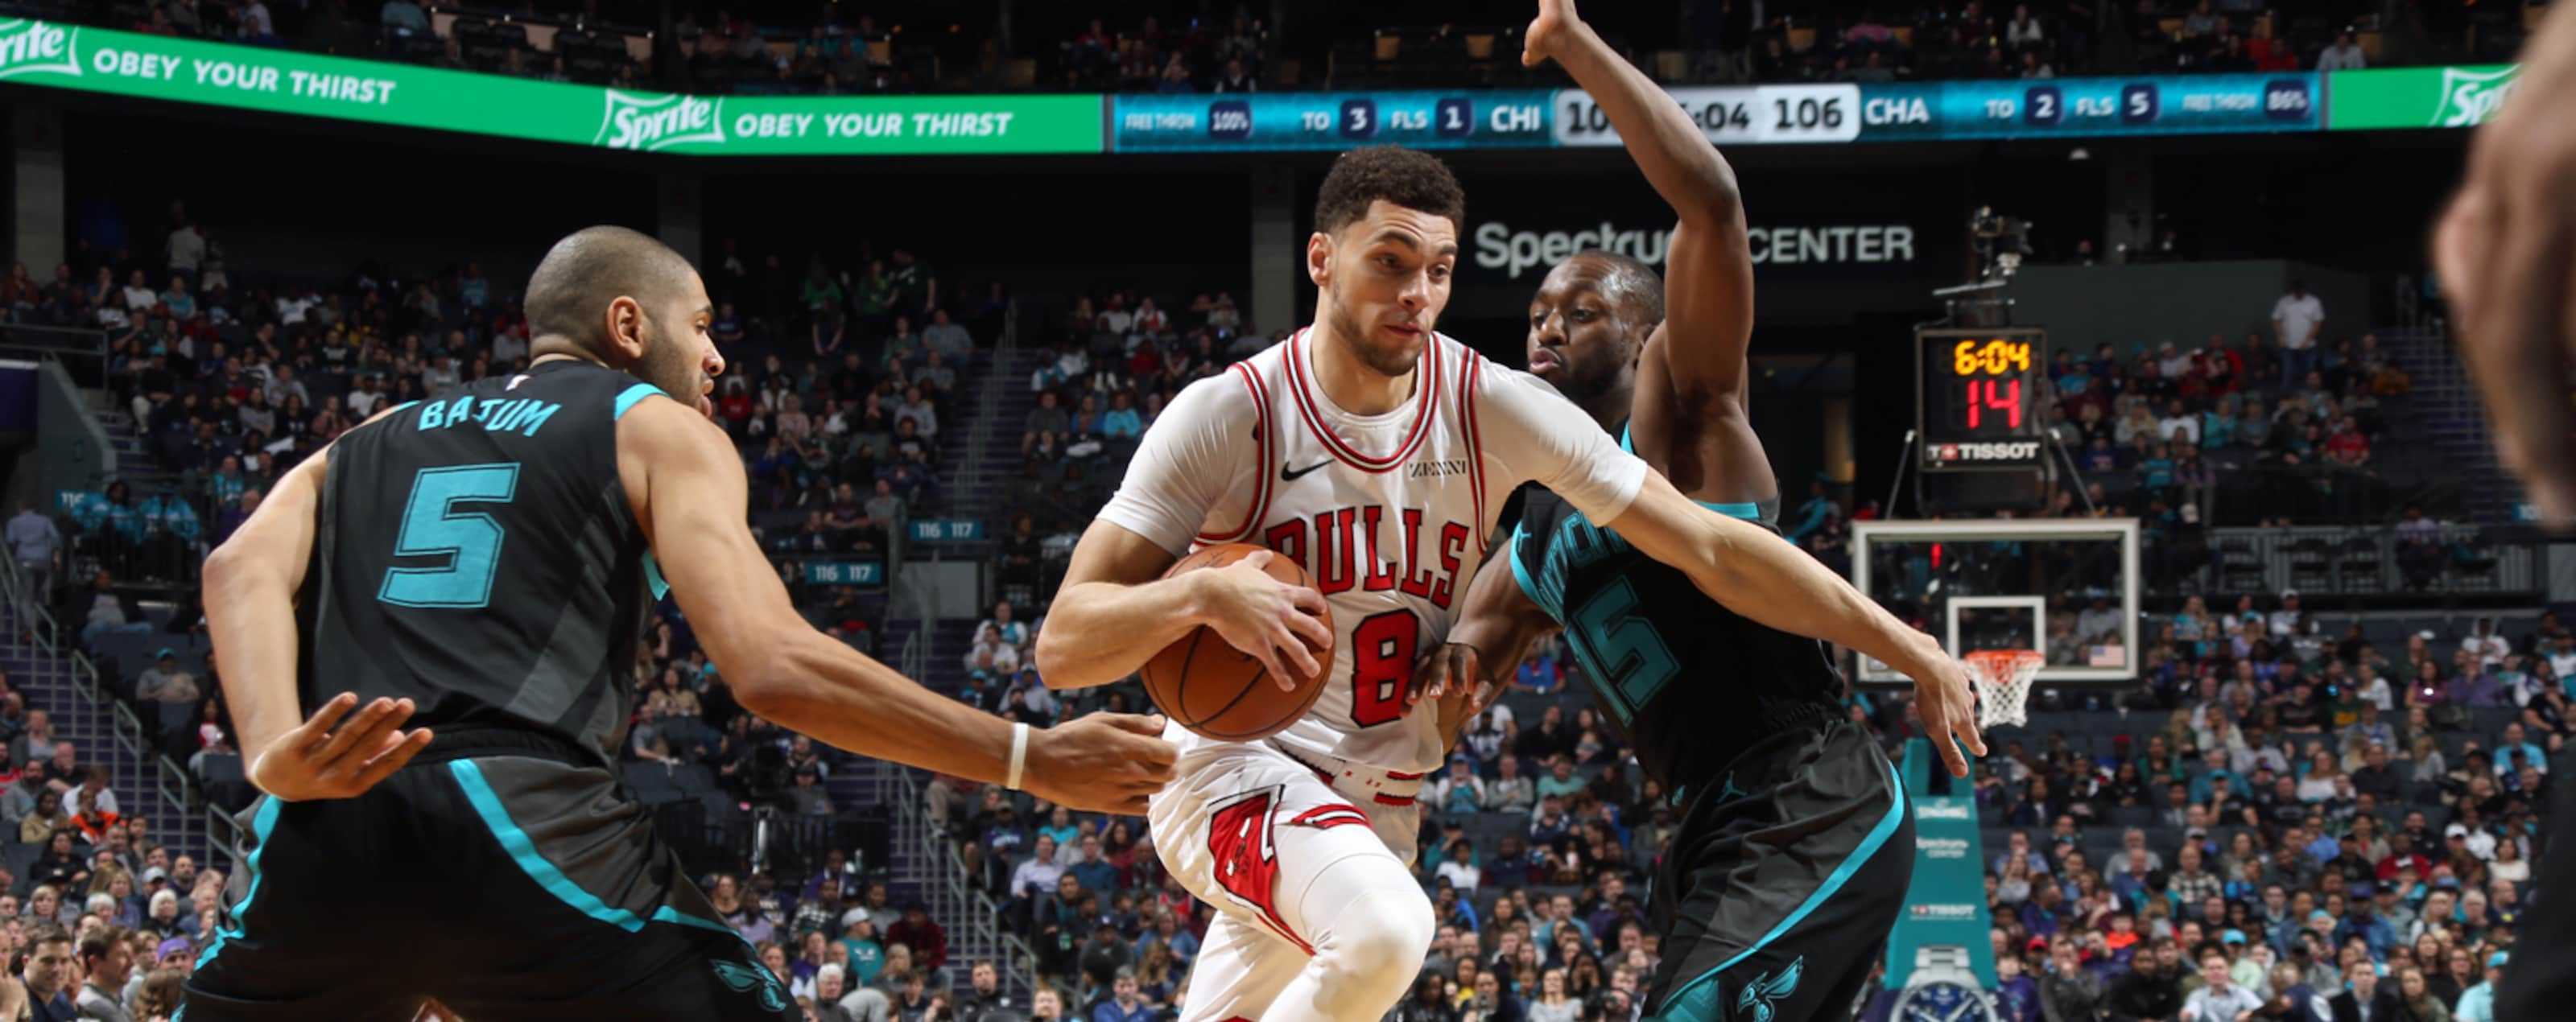 Zach LaVine #8 of the Chicago Bulls drives to the basket against the Charlotte Hornets on February 2, 2019 at the Spectrum Center in Charlotte, North Carolina.